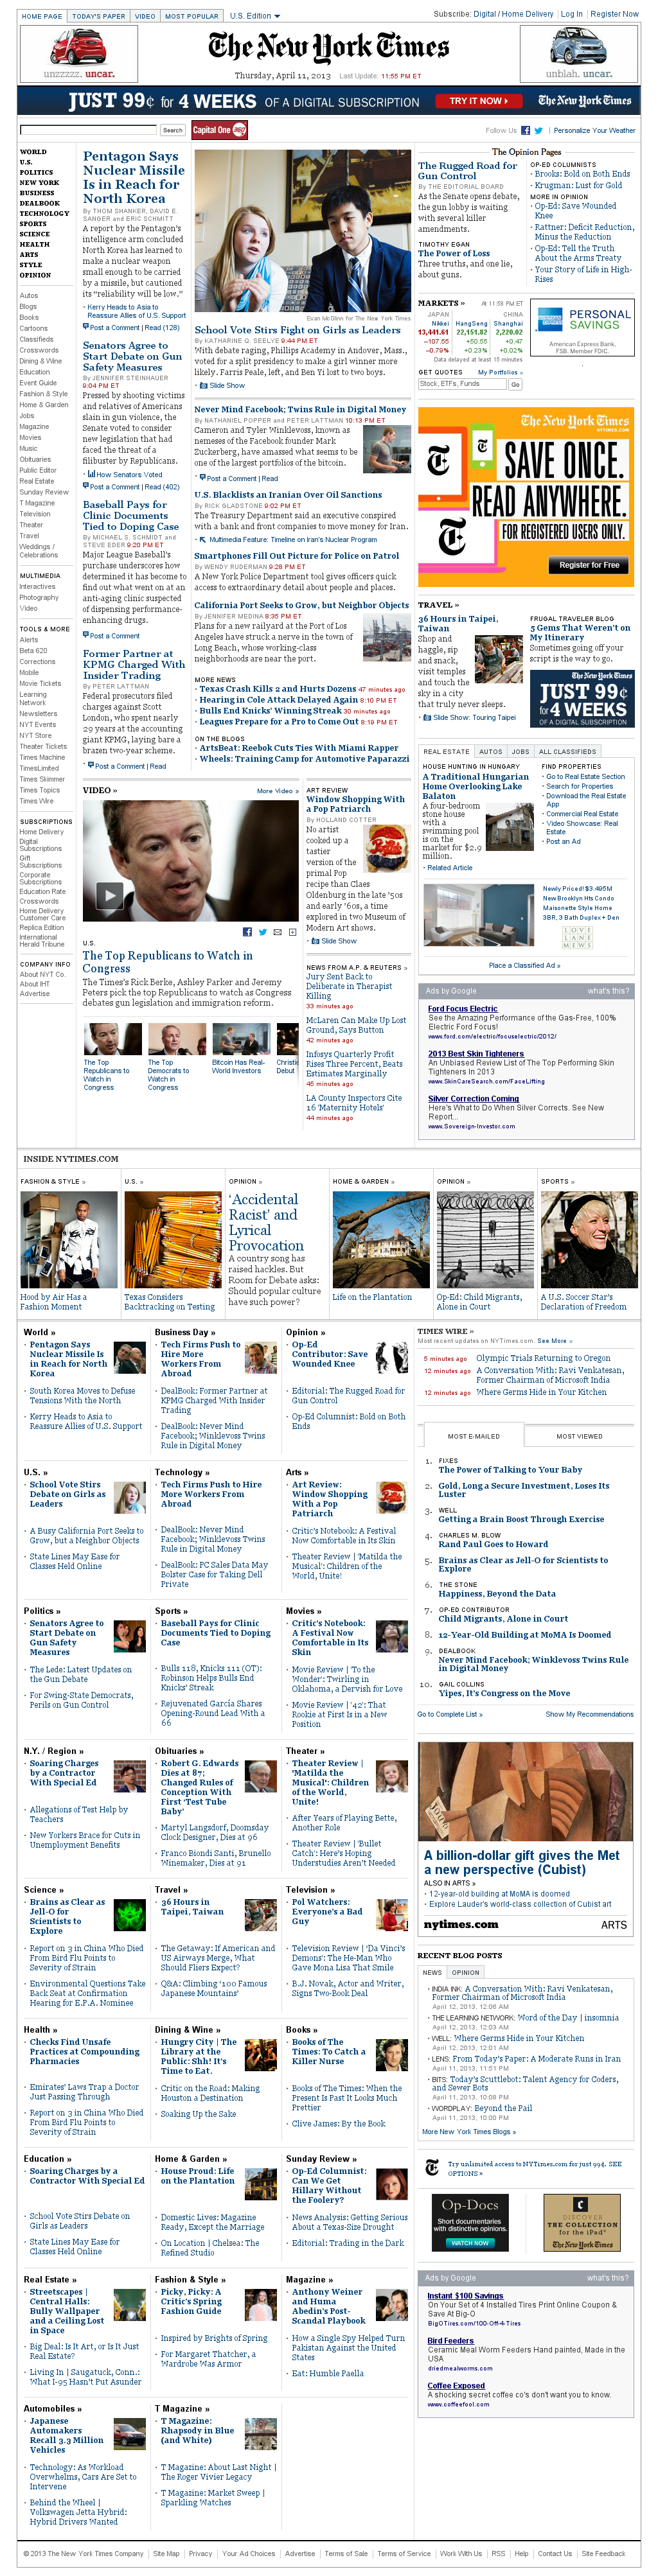 The New York Times at Friday April 12, 2013, 4:19 a.m. UTC